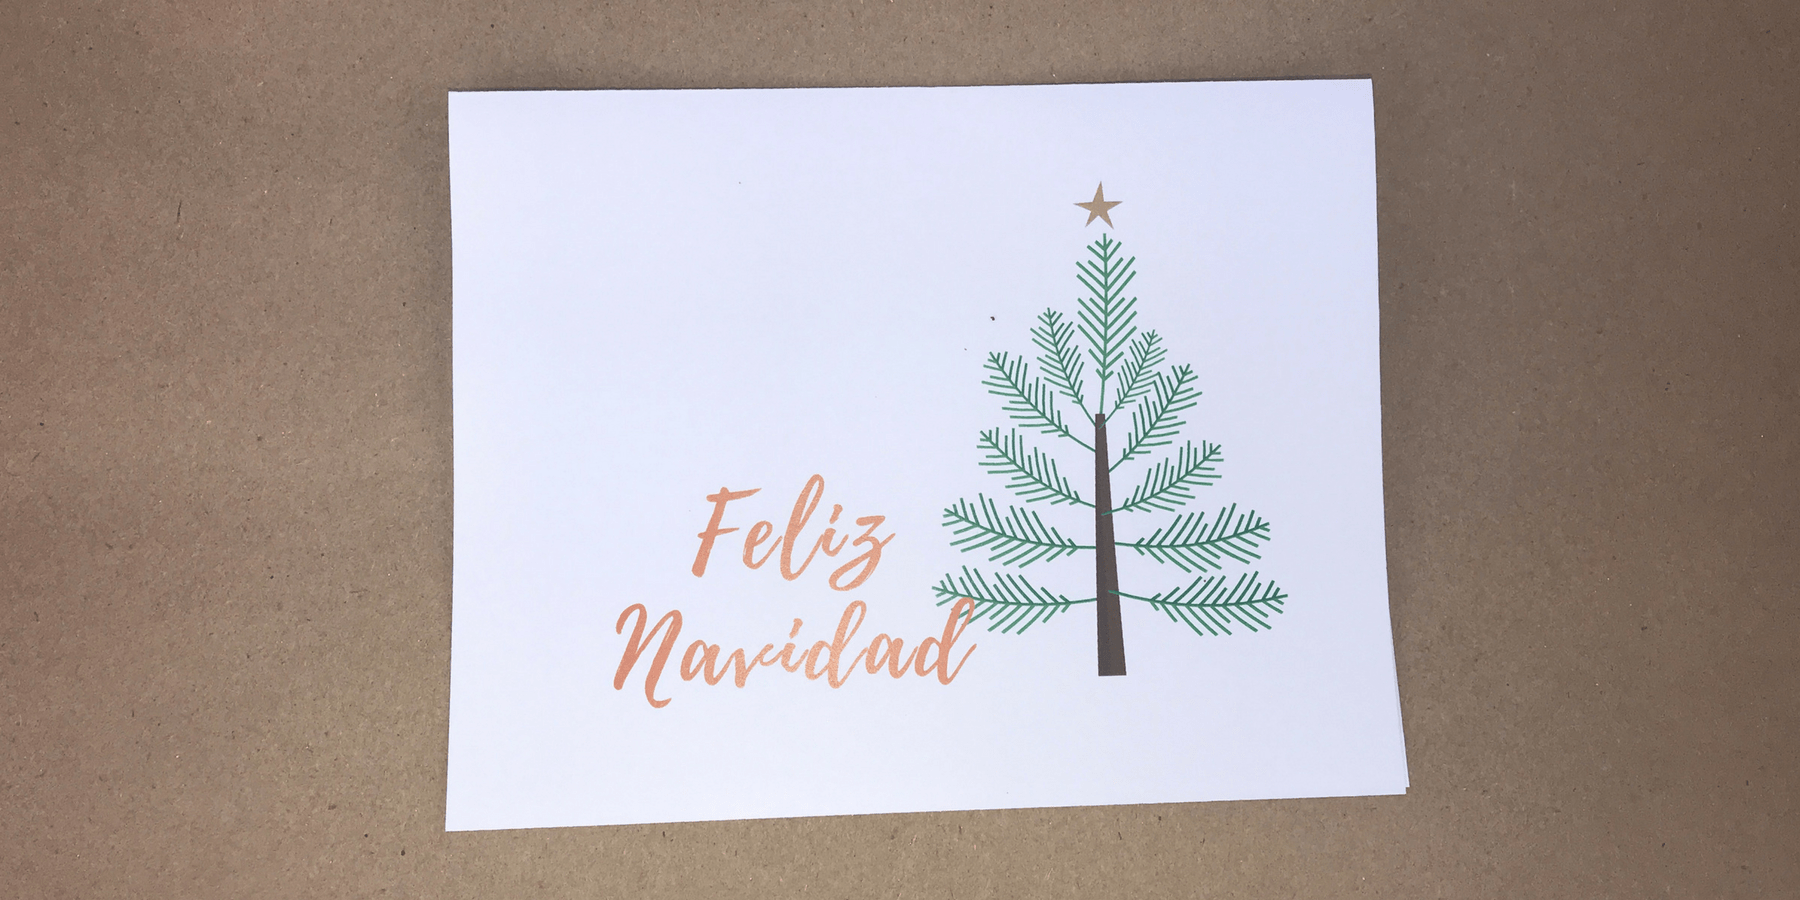 Free Christmas Cards In Spanish With Other Holidays Too